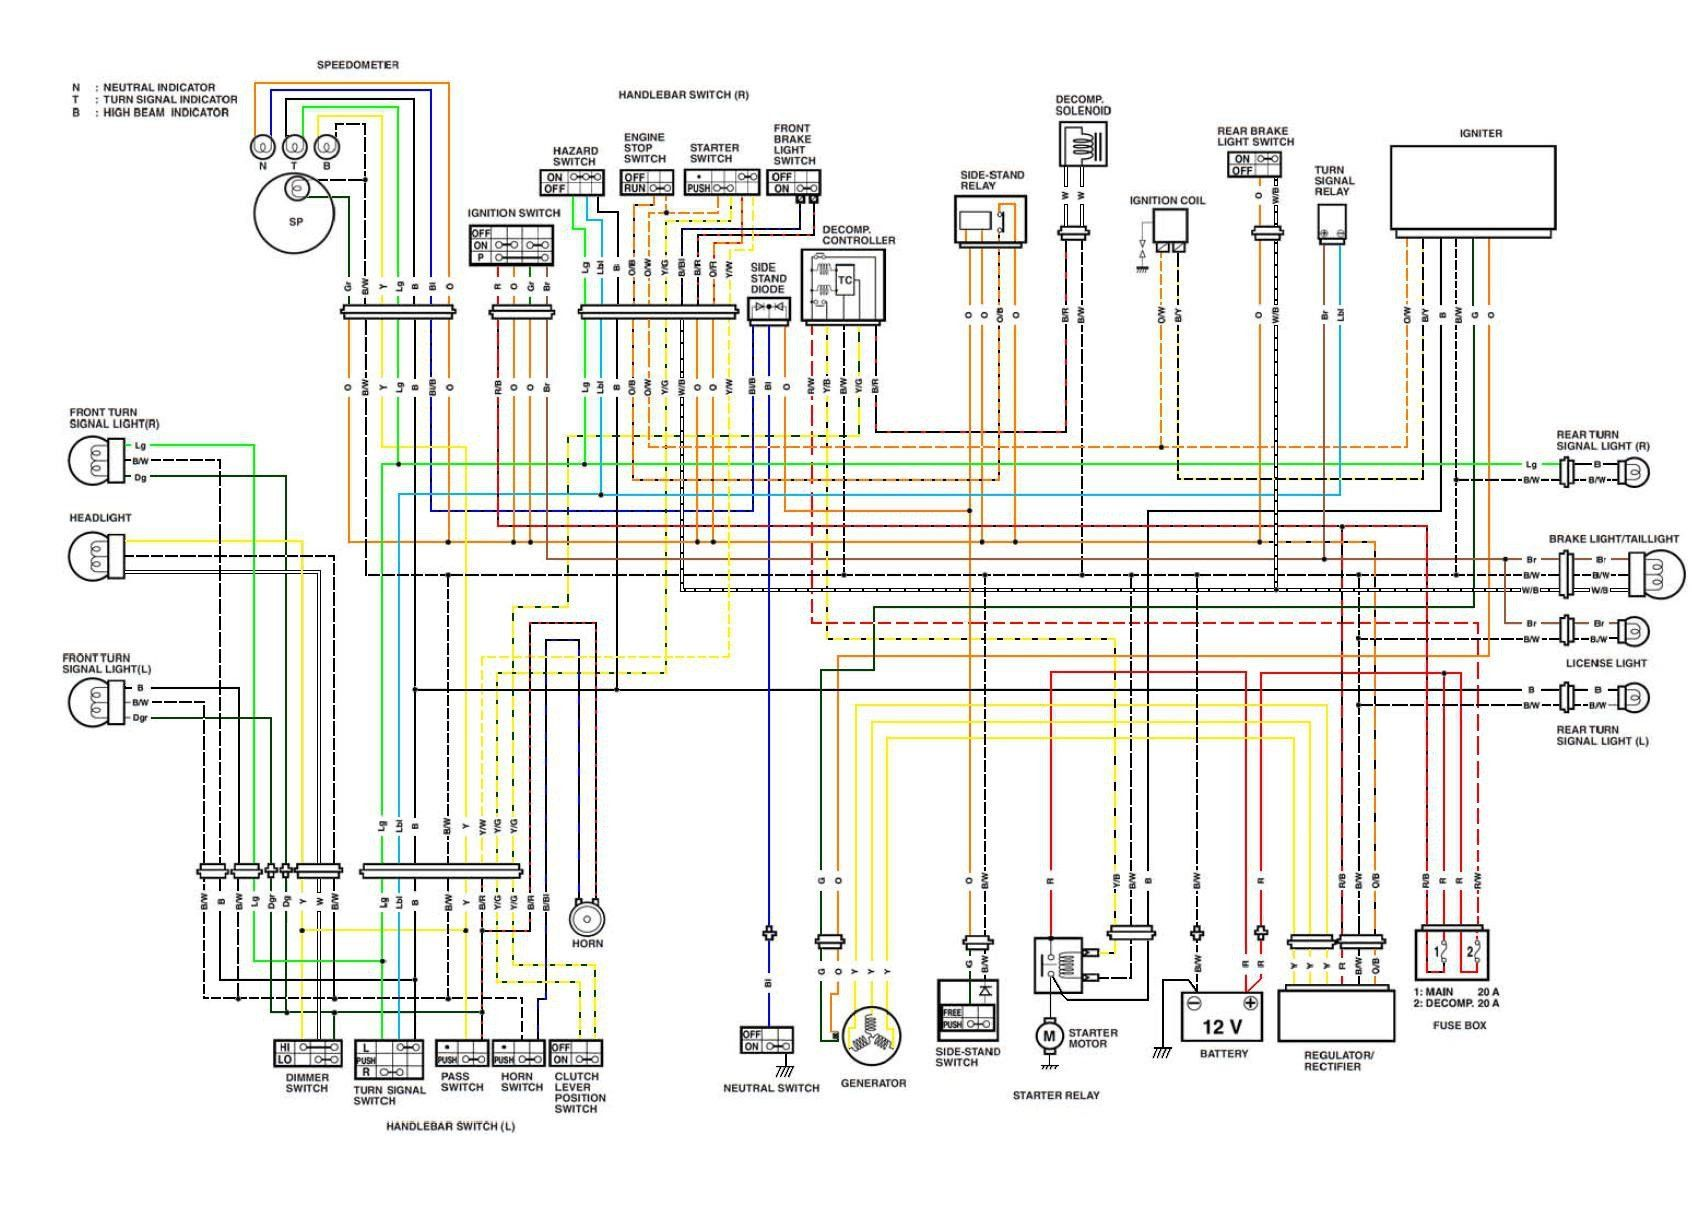 24 Good Sample Of Automotive Wiring Diagrams Download Https Bacamajalah Com 24 Good Sample Of Automotive Wiring Diagrams Download Softail Diagram Harley